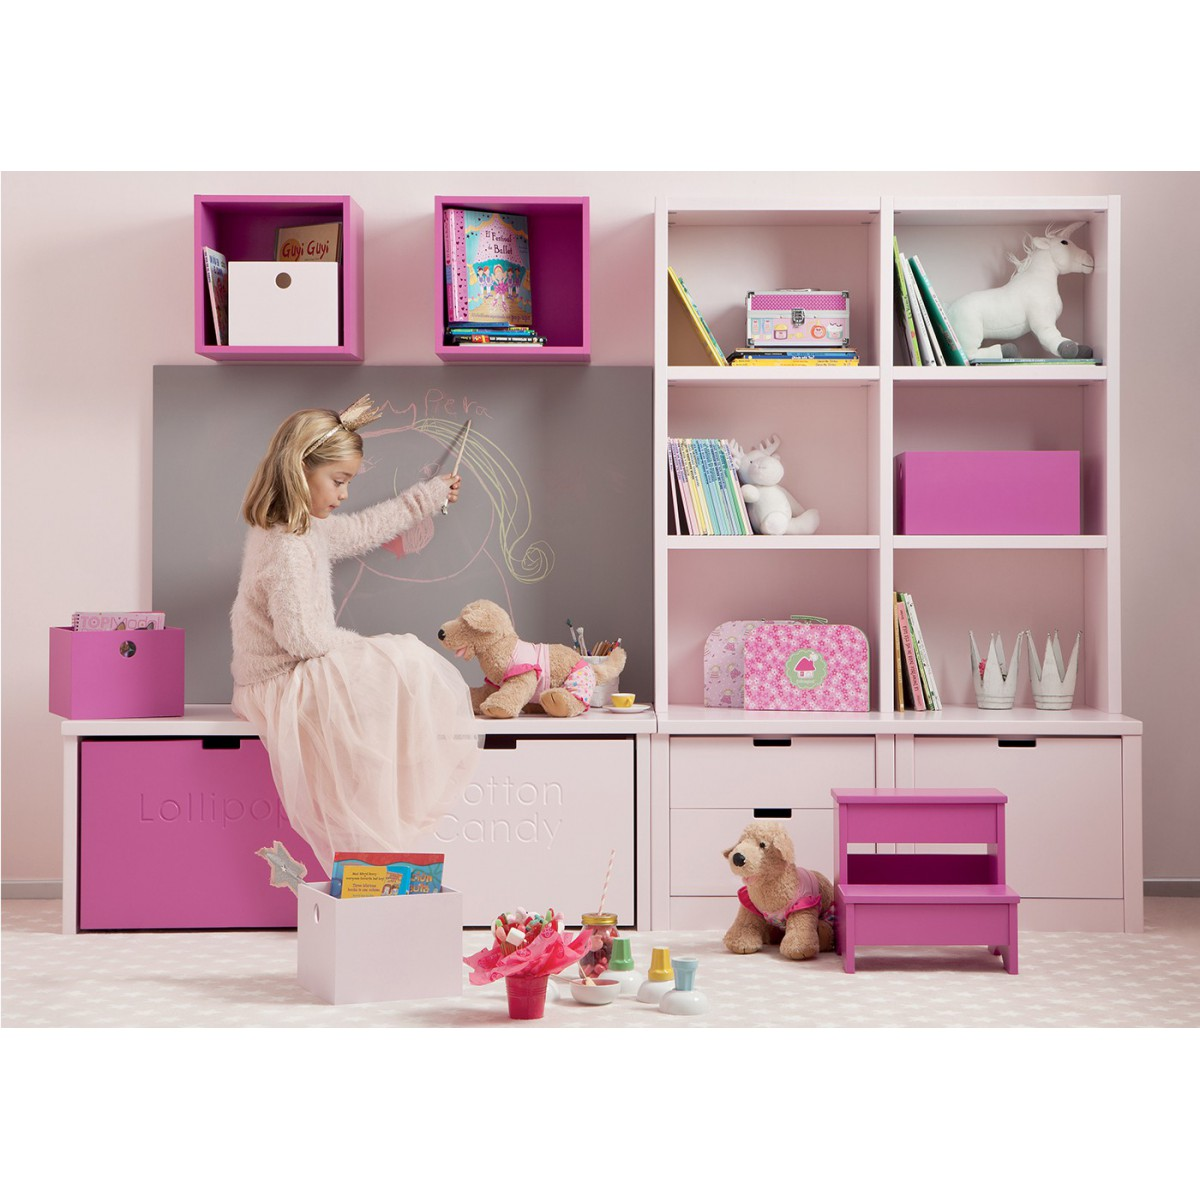 biblioth que enfant junior ado design et de qualit asoral. Black Bedroom Furniture Sets. Home Design Ideas